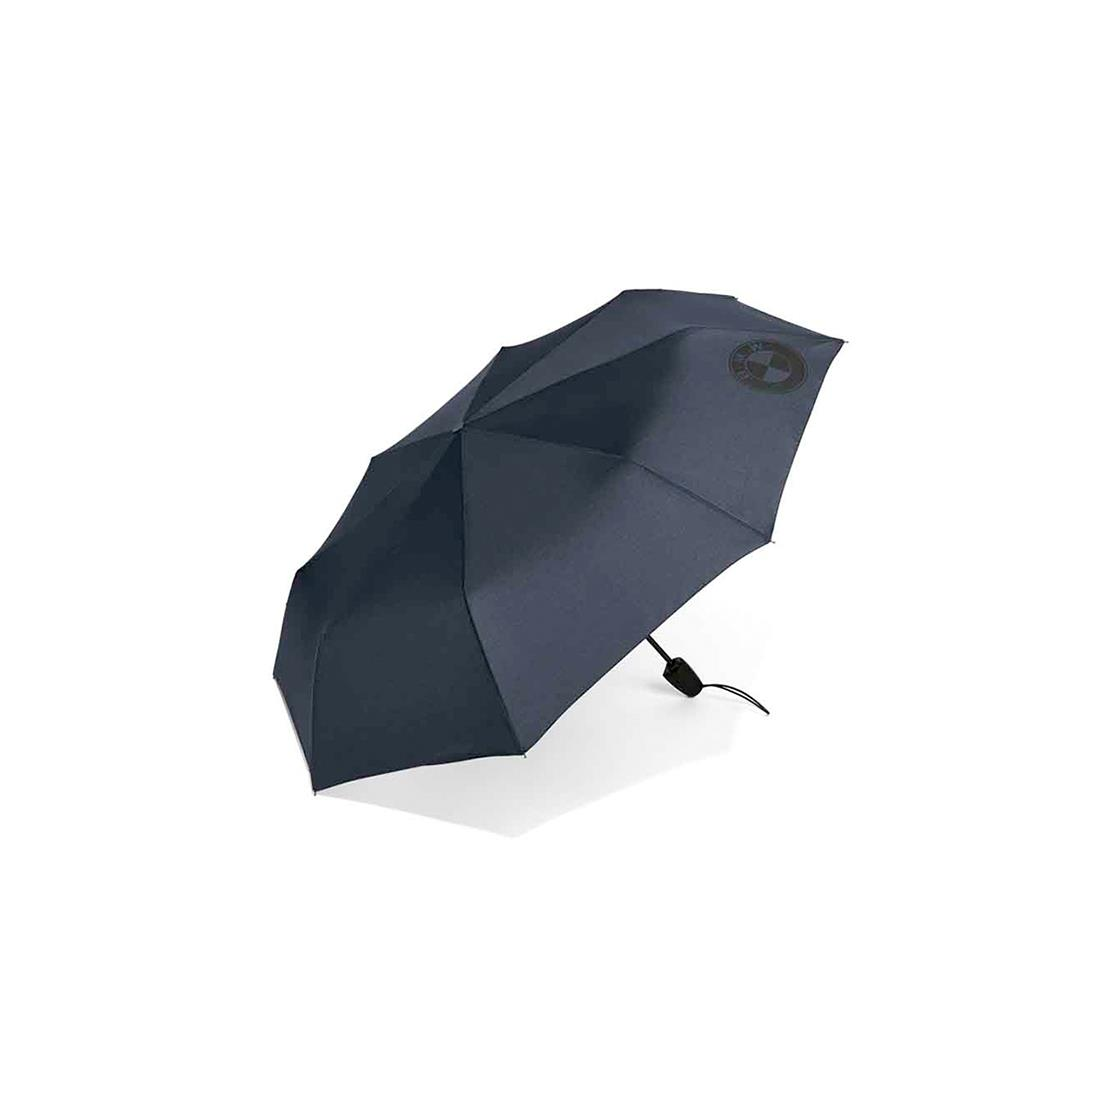 BMW POCKET UMBRELLA LOGO